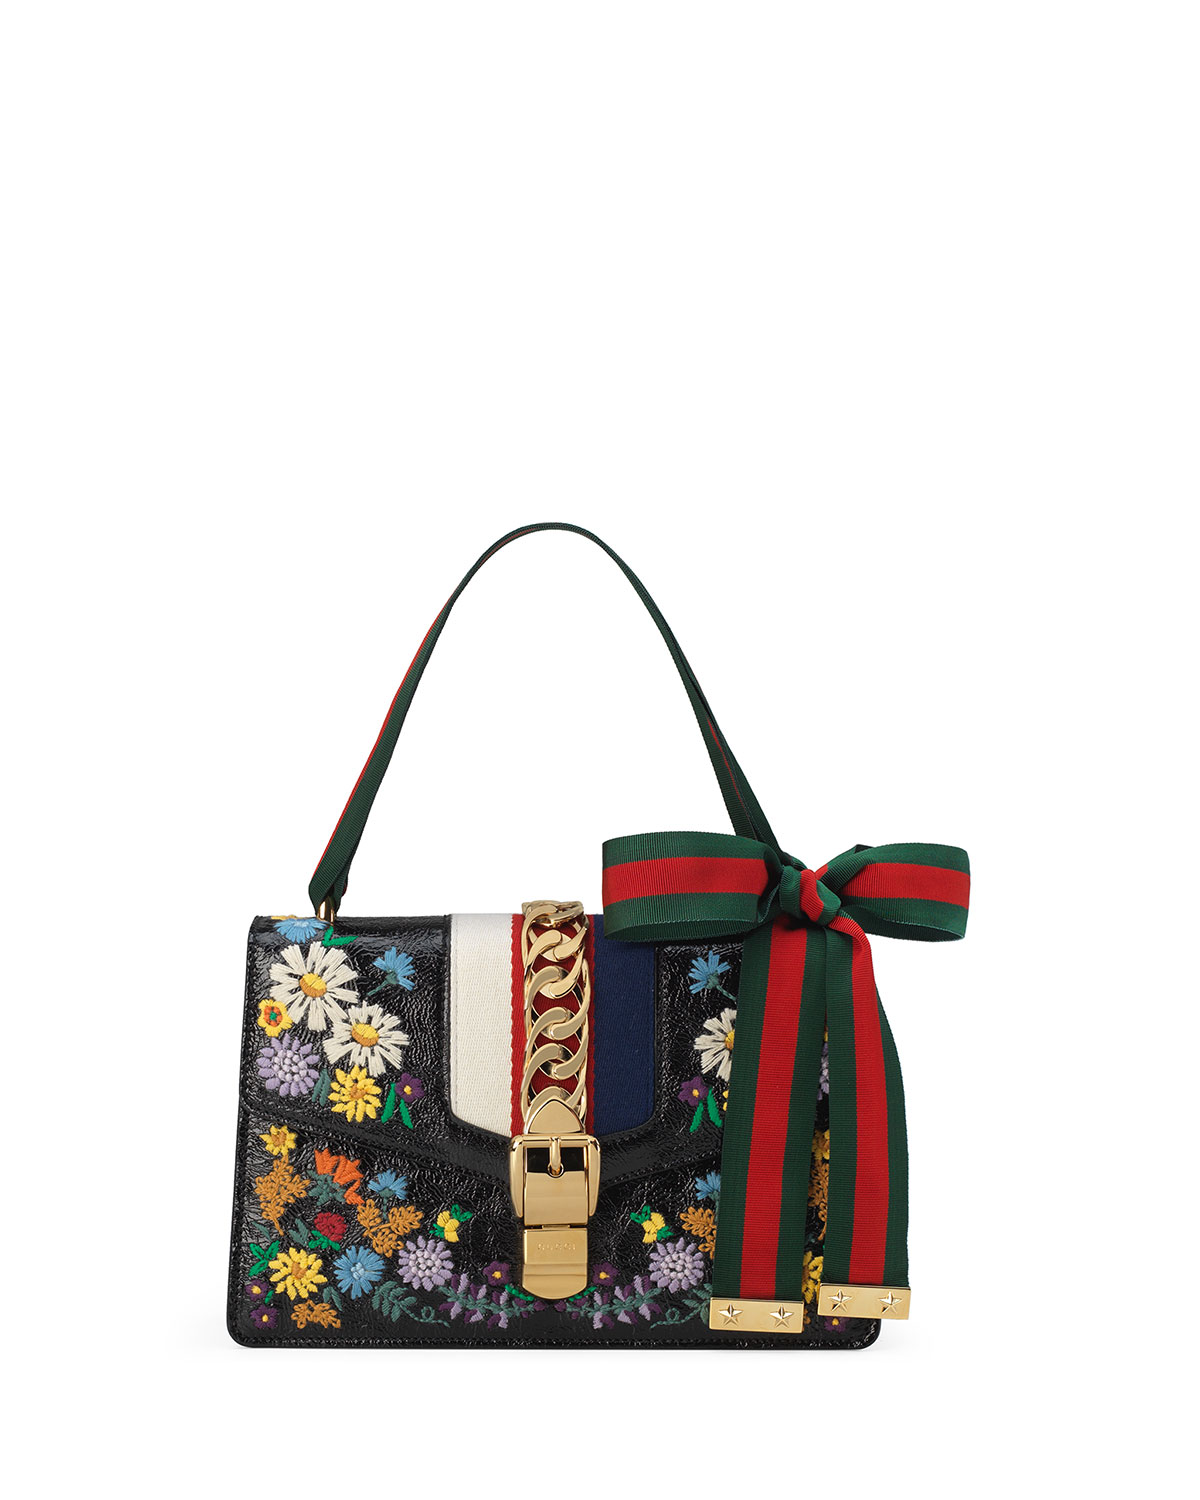 d94210010 Gucci Sylvie Small Floral Leather Shoulder Bag | Neiman Marcus